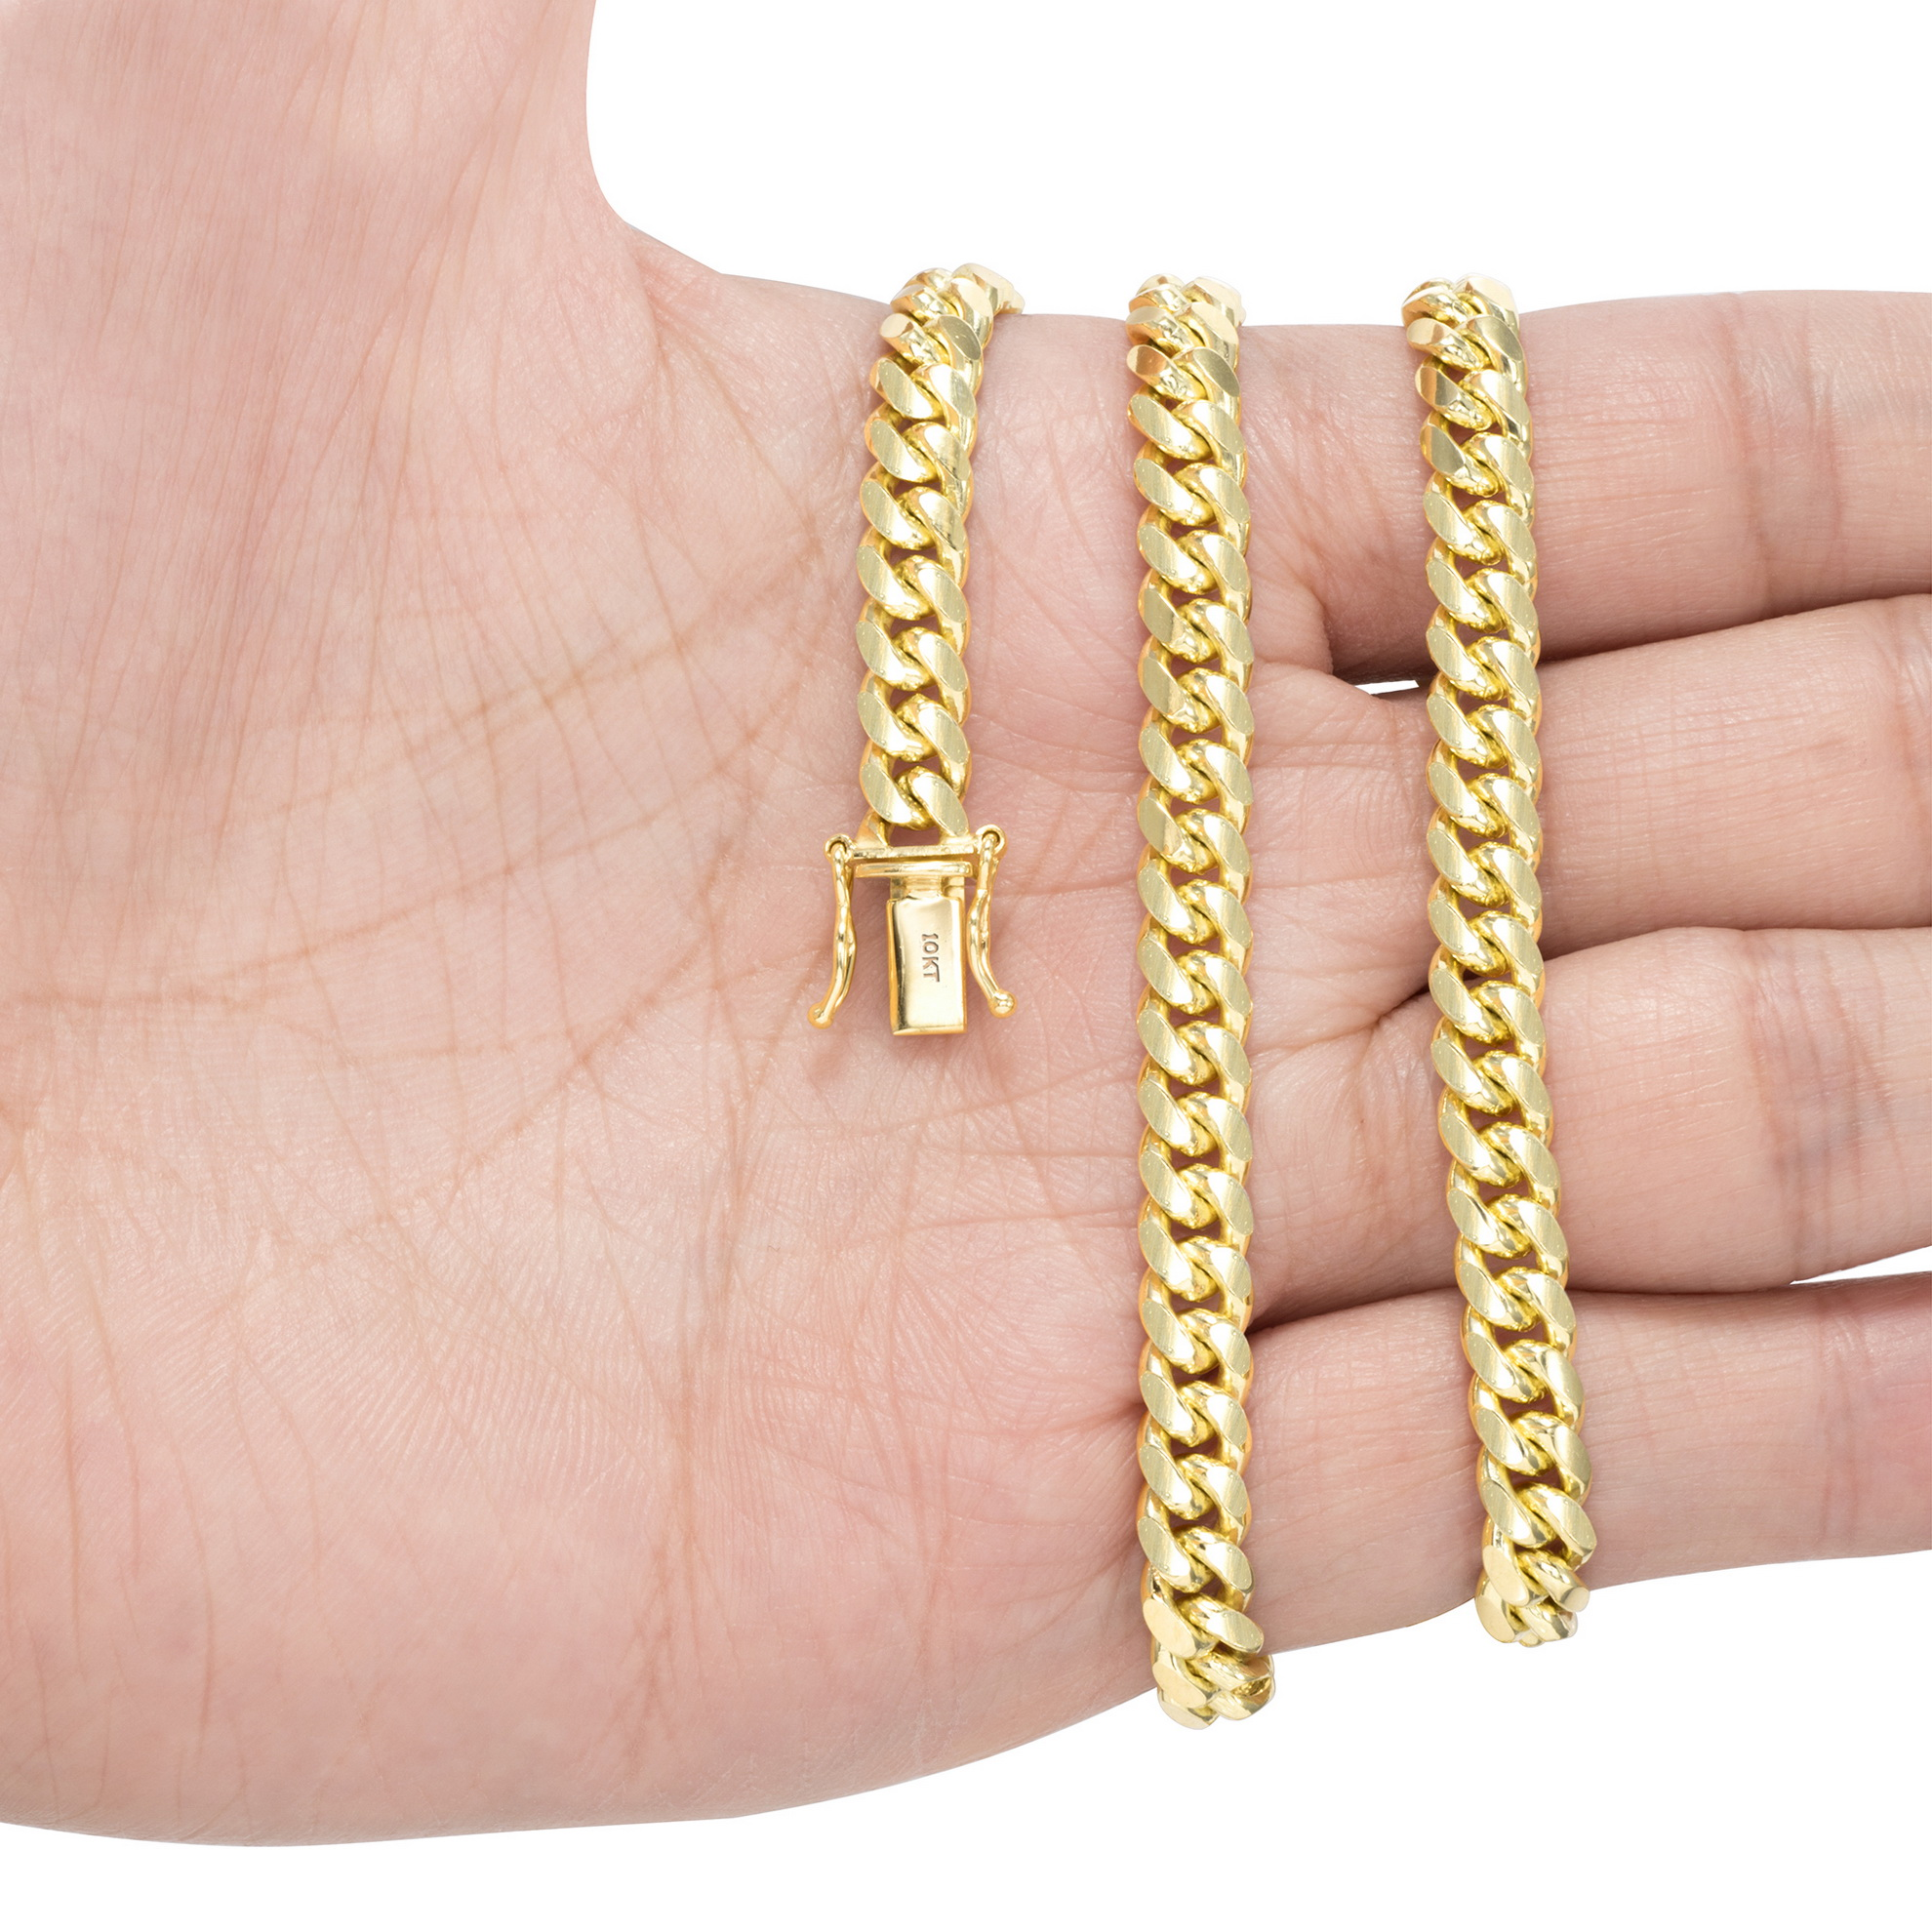 10K-Yellow-Gold-Solid-2-7mm-10mm-Miami-Cuban-Link-Chain-Necklace-Bracelet-7-034-30-034 thumbnail 22